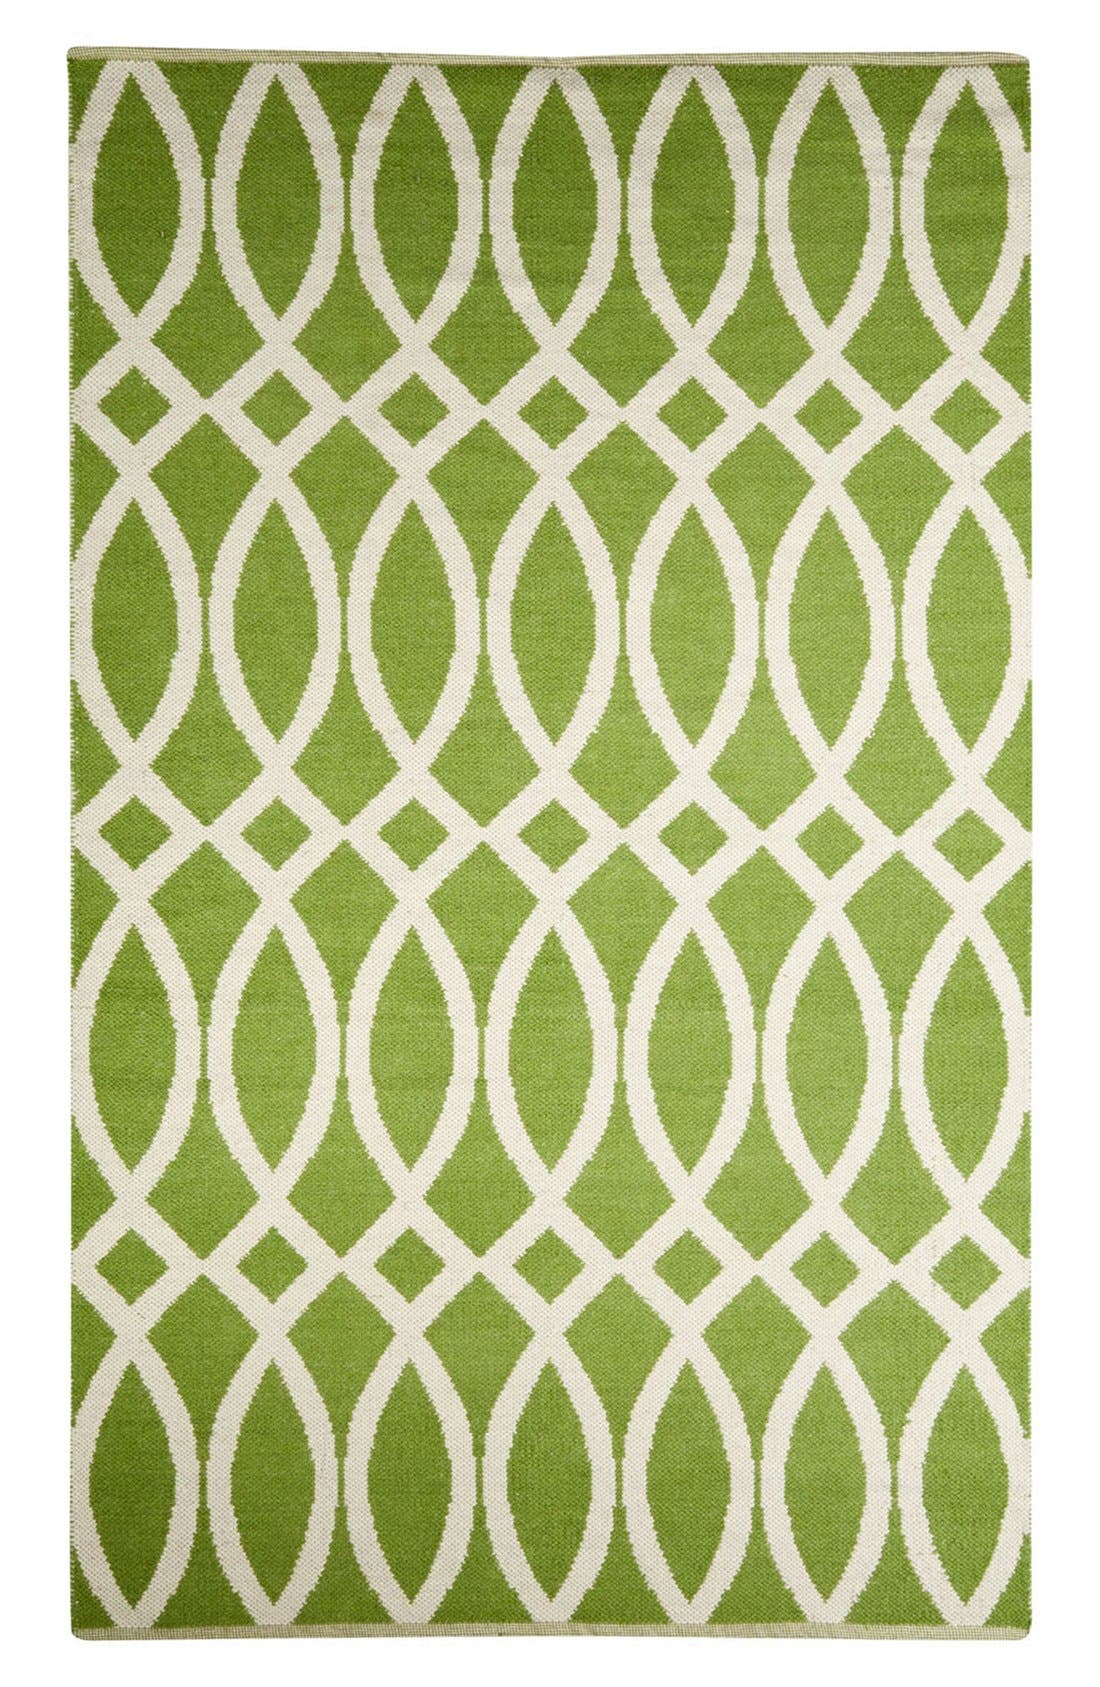 Main Image - kate spade new york 'roosevelt' hand woven reversible wool & cotton rug